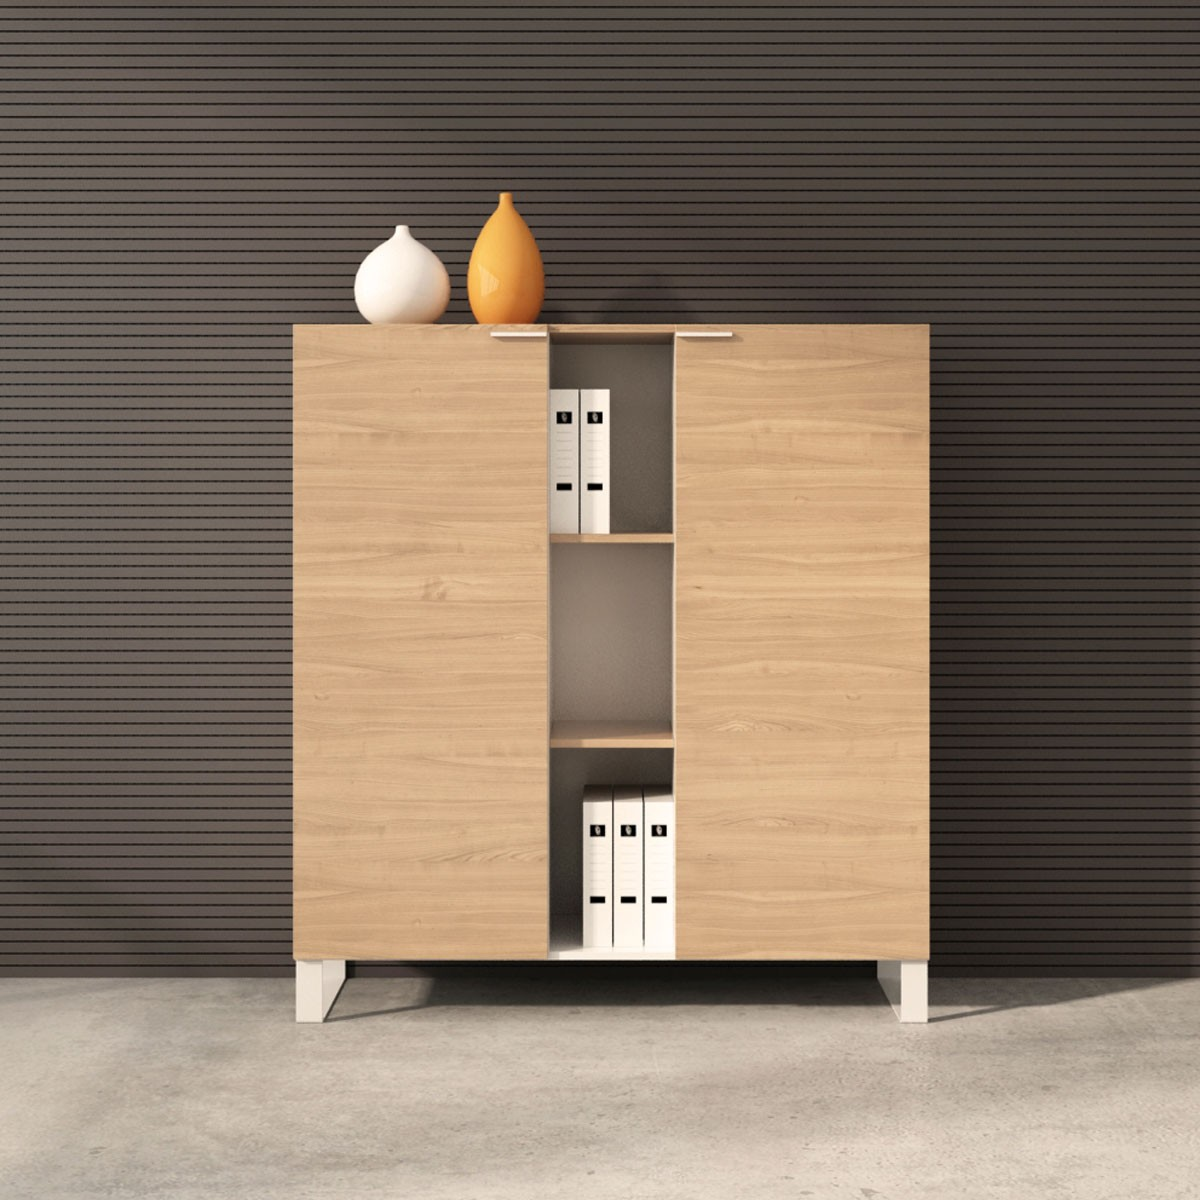 "Office Storage Cabinet 52""H x 47.2""W x 15.7""D in Oak and White with 2 doors (CG12)"